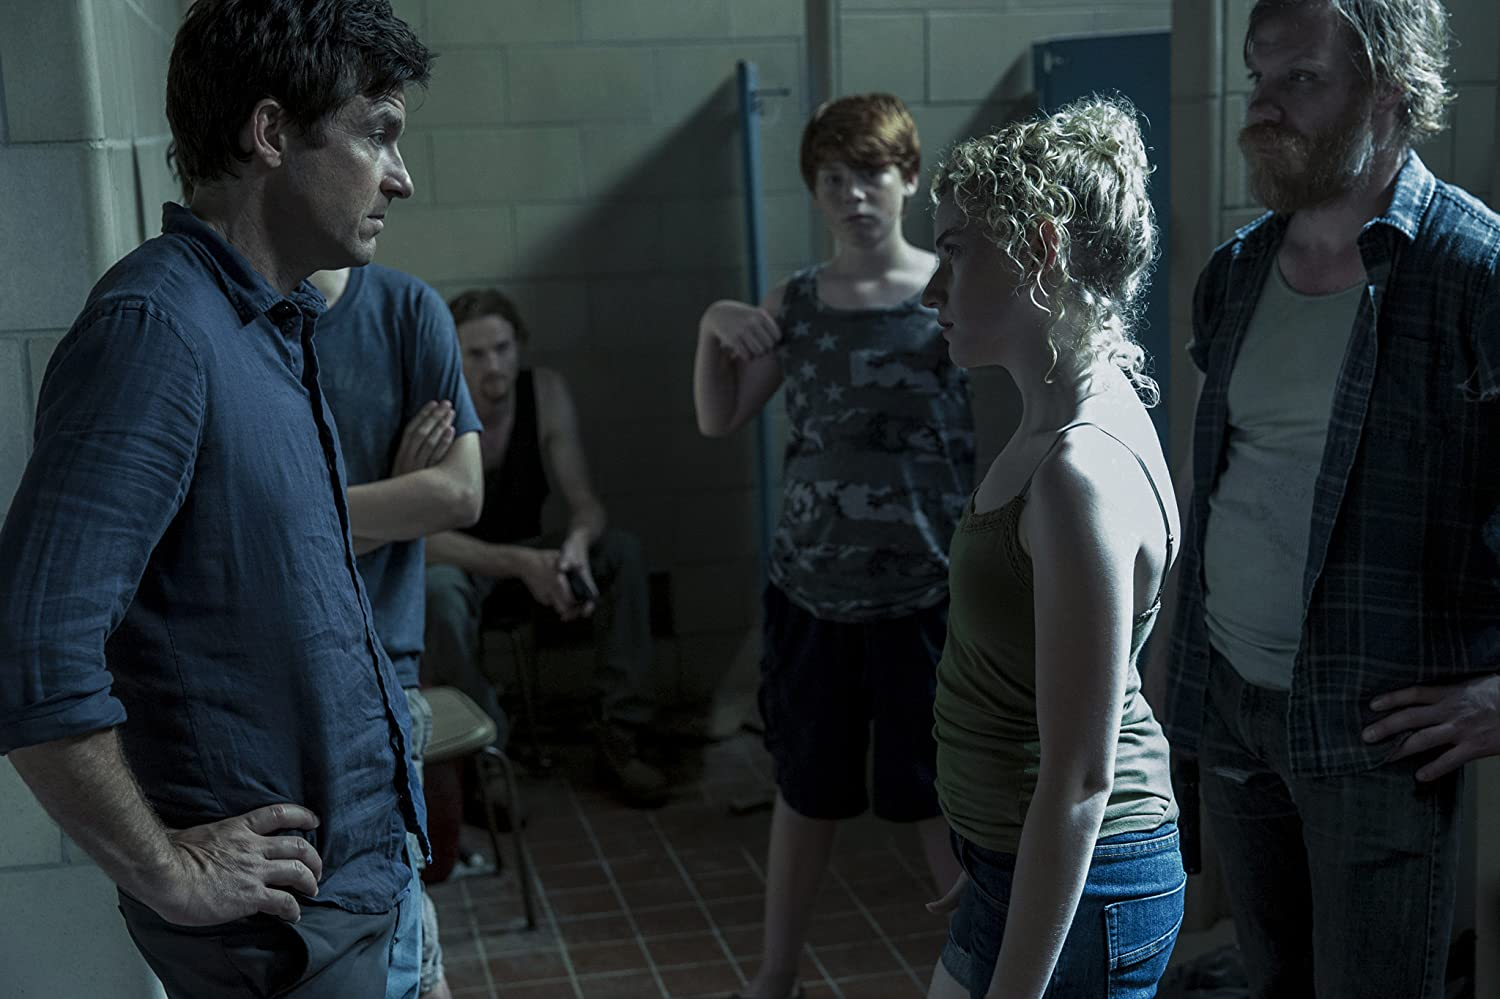 Jason Bateman, Christopher James Baker, Marc Menchaca, Charlie Tahan, Julia Garner, and Carson Holmes in Ozark (2017)